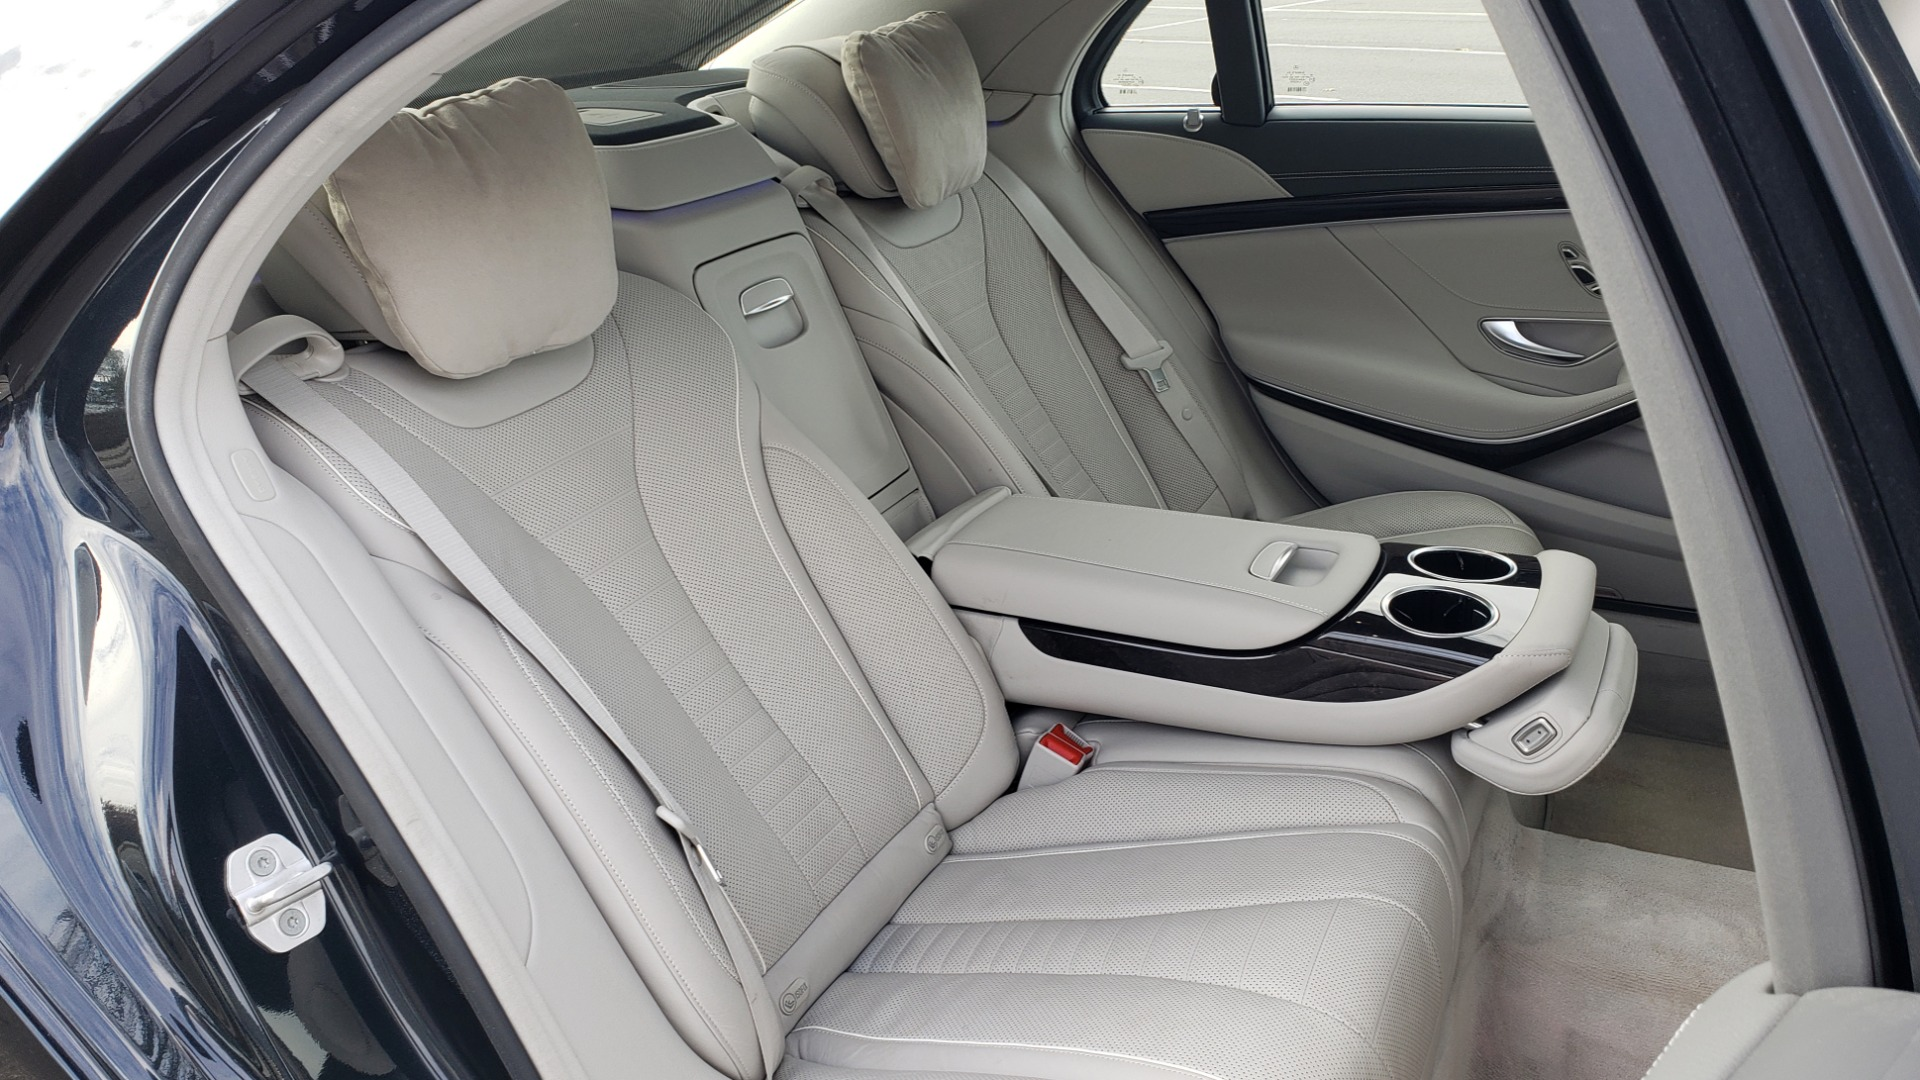 Used 2015 Mercedes-Benz S-CLASS S 550 PREMIUM / SPORT / WARMTH&COMFORT / DRVR ASST / SRND VIEW for sale Sold at Formula Imports in Charlotte NC 28227 85